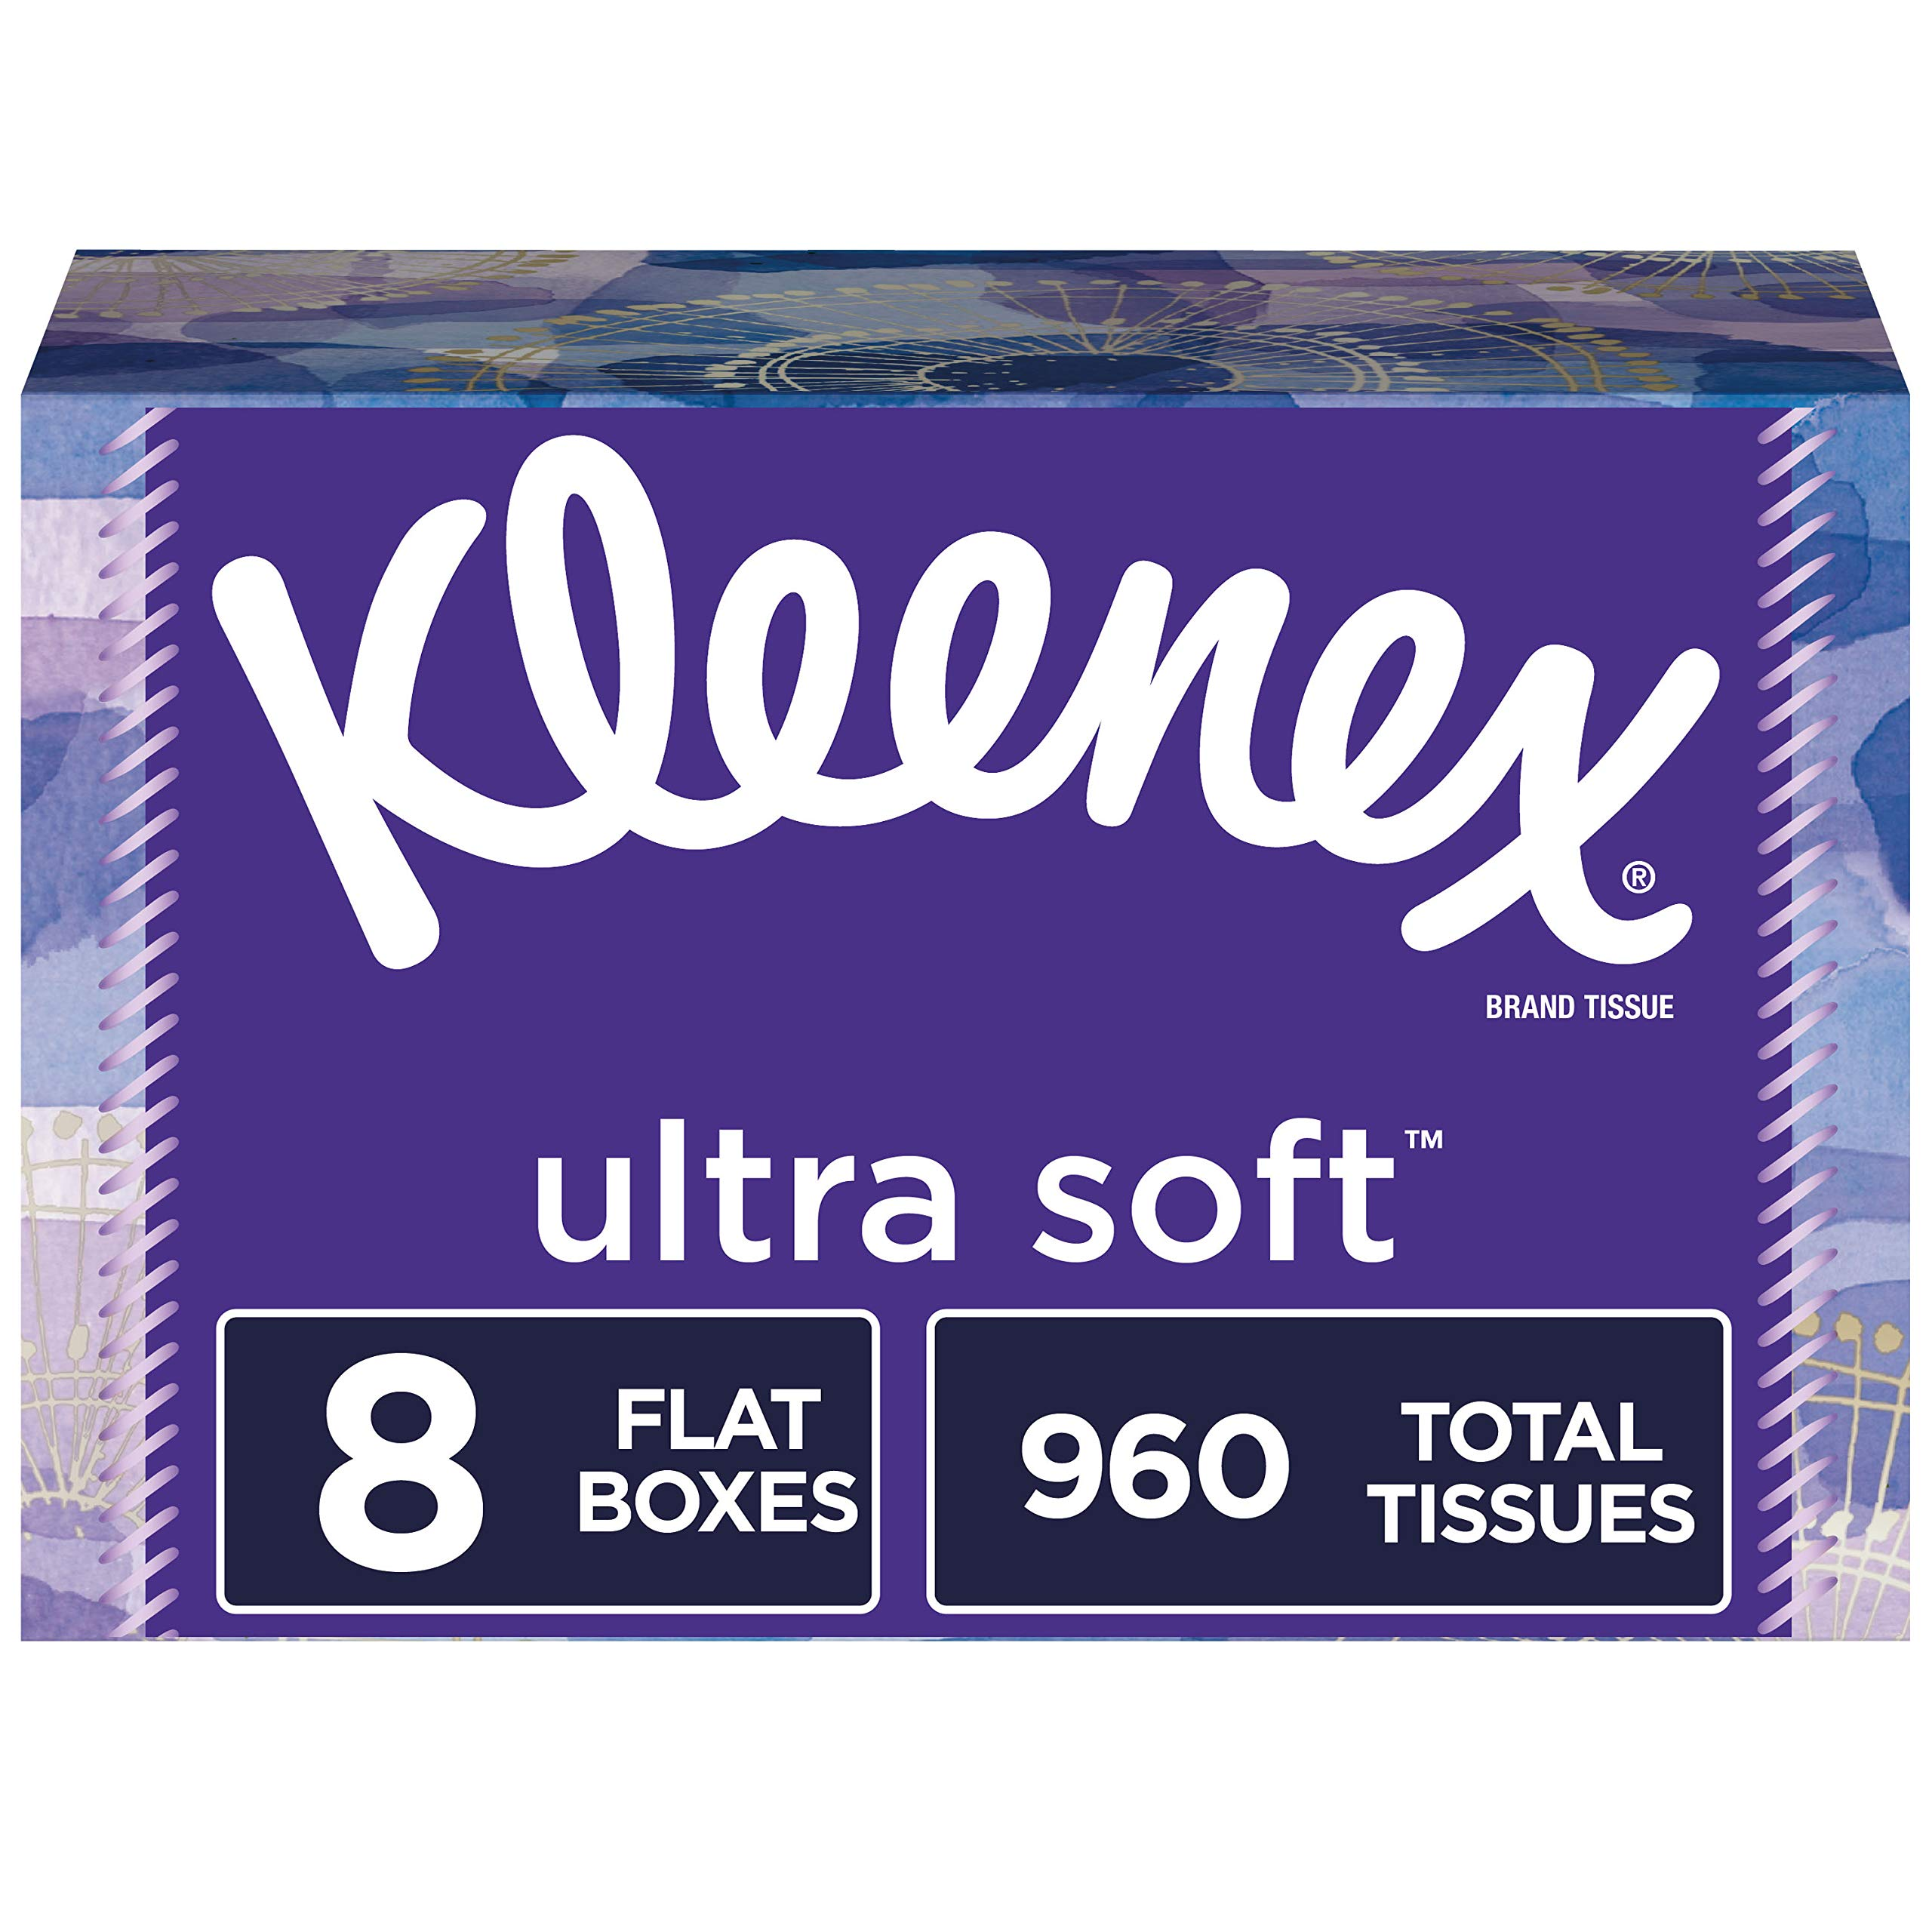 Kleenex Ultra Soft Facial Tissues, 120 Count per Box, Pack of 8